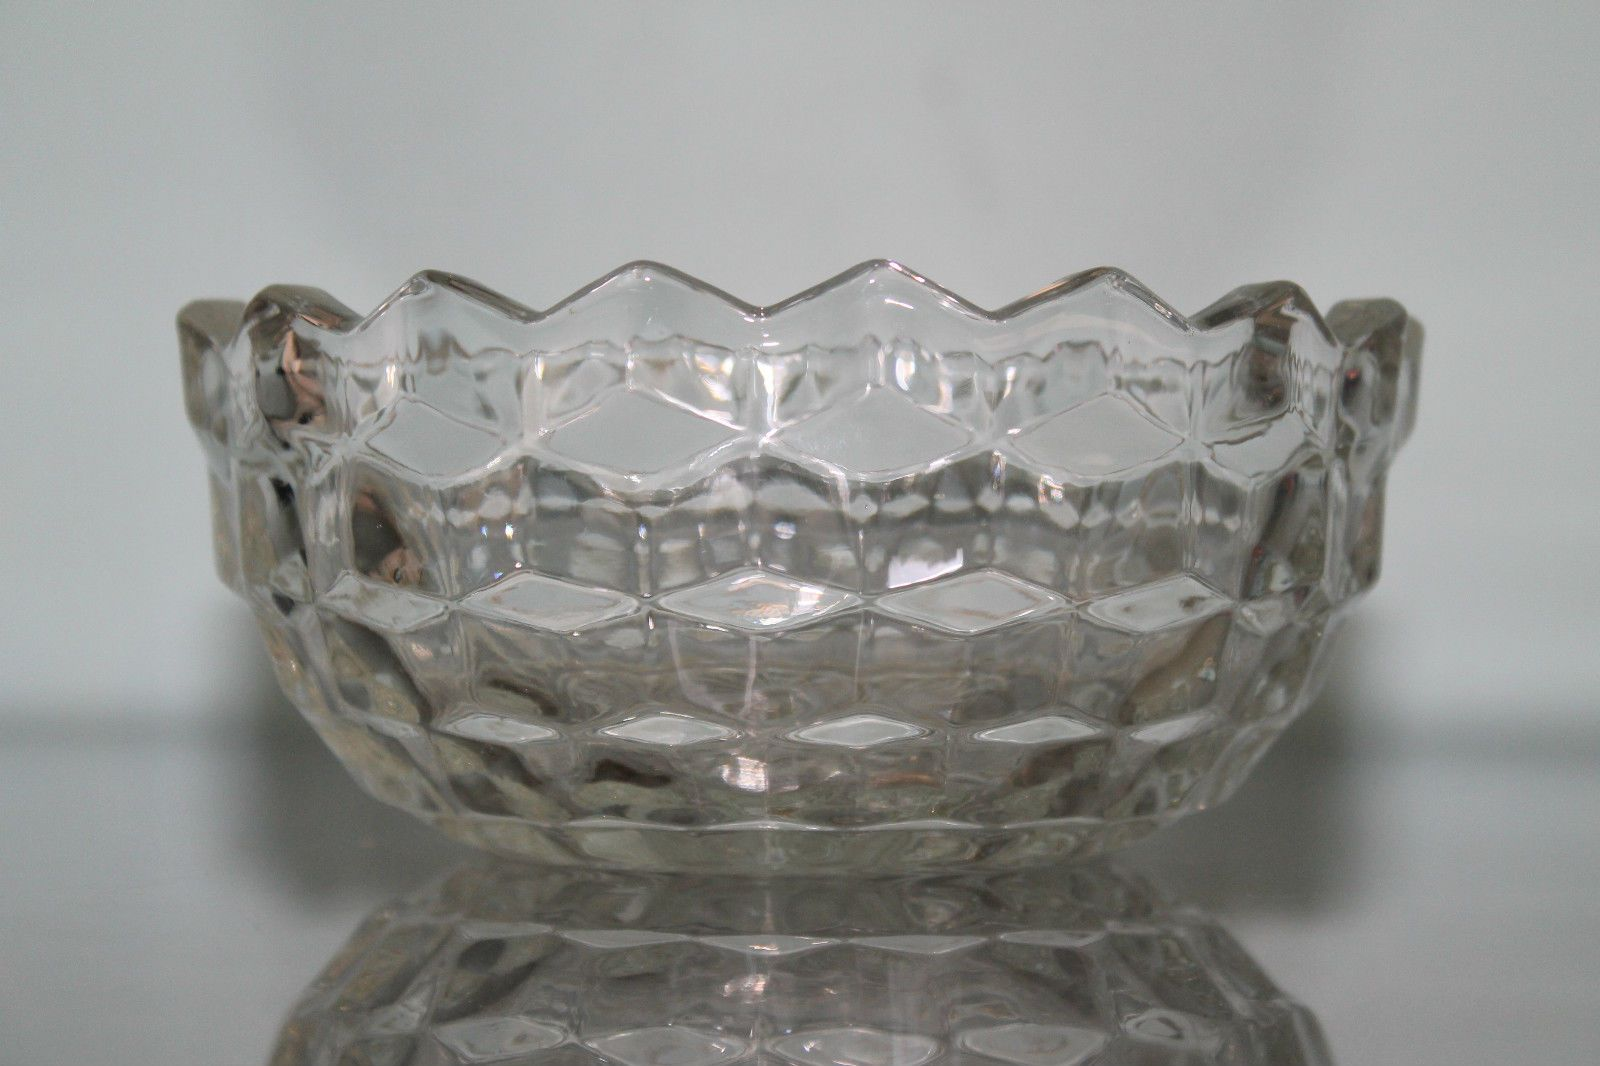 Murano Glass Bowl Stunning Clear Piece Vintage Rare Shape Beautiful Gorgeous 39 99 With Images Glass Bowl Heavy Glass Bowl